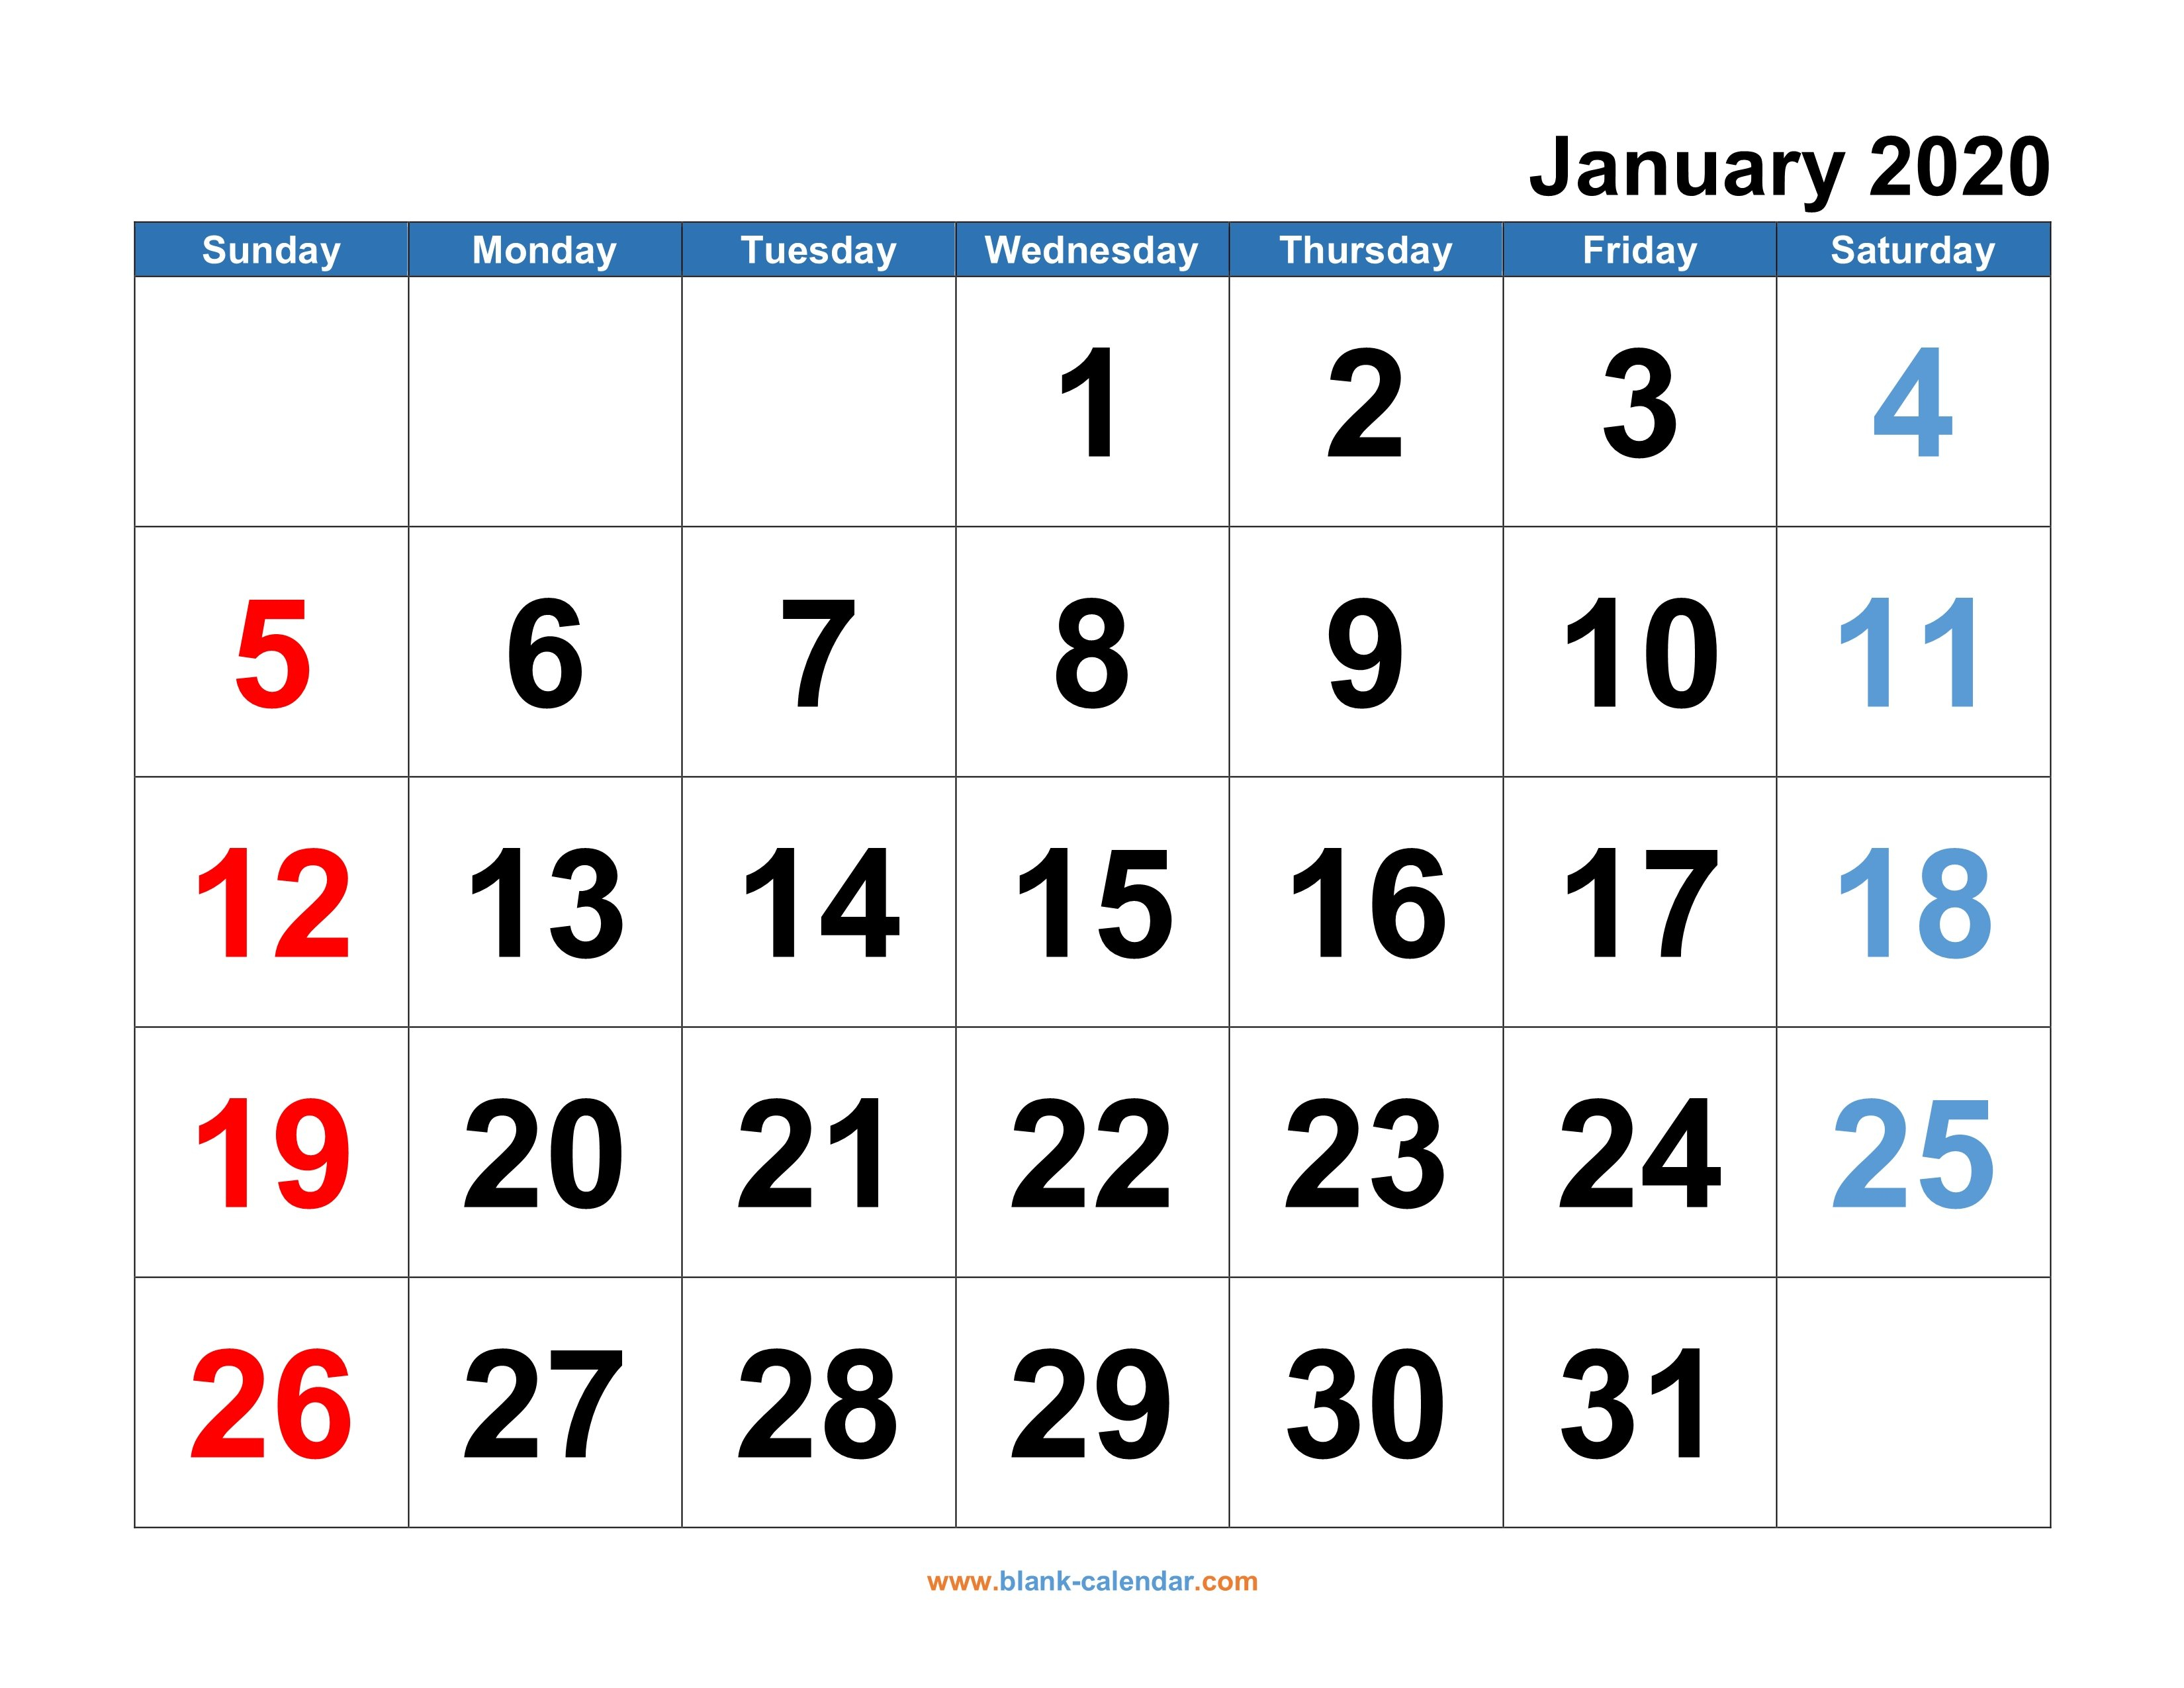 Monthly Calendar 2020 | Free Download, Editable And Printable Free Calendars You Can Edit